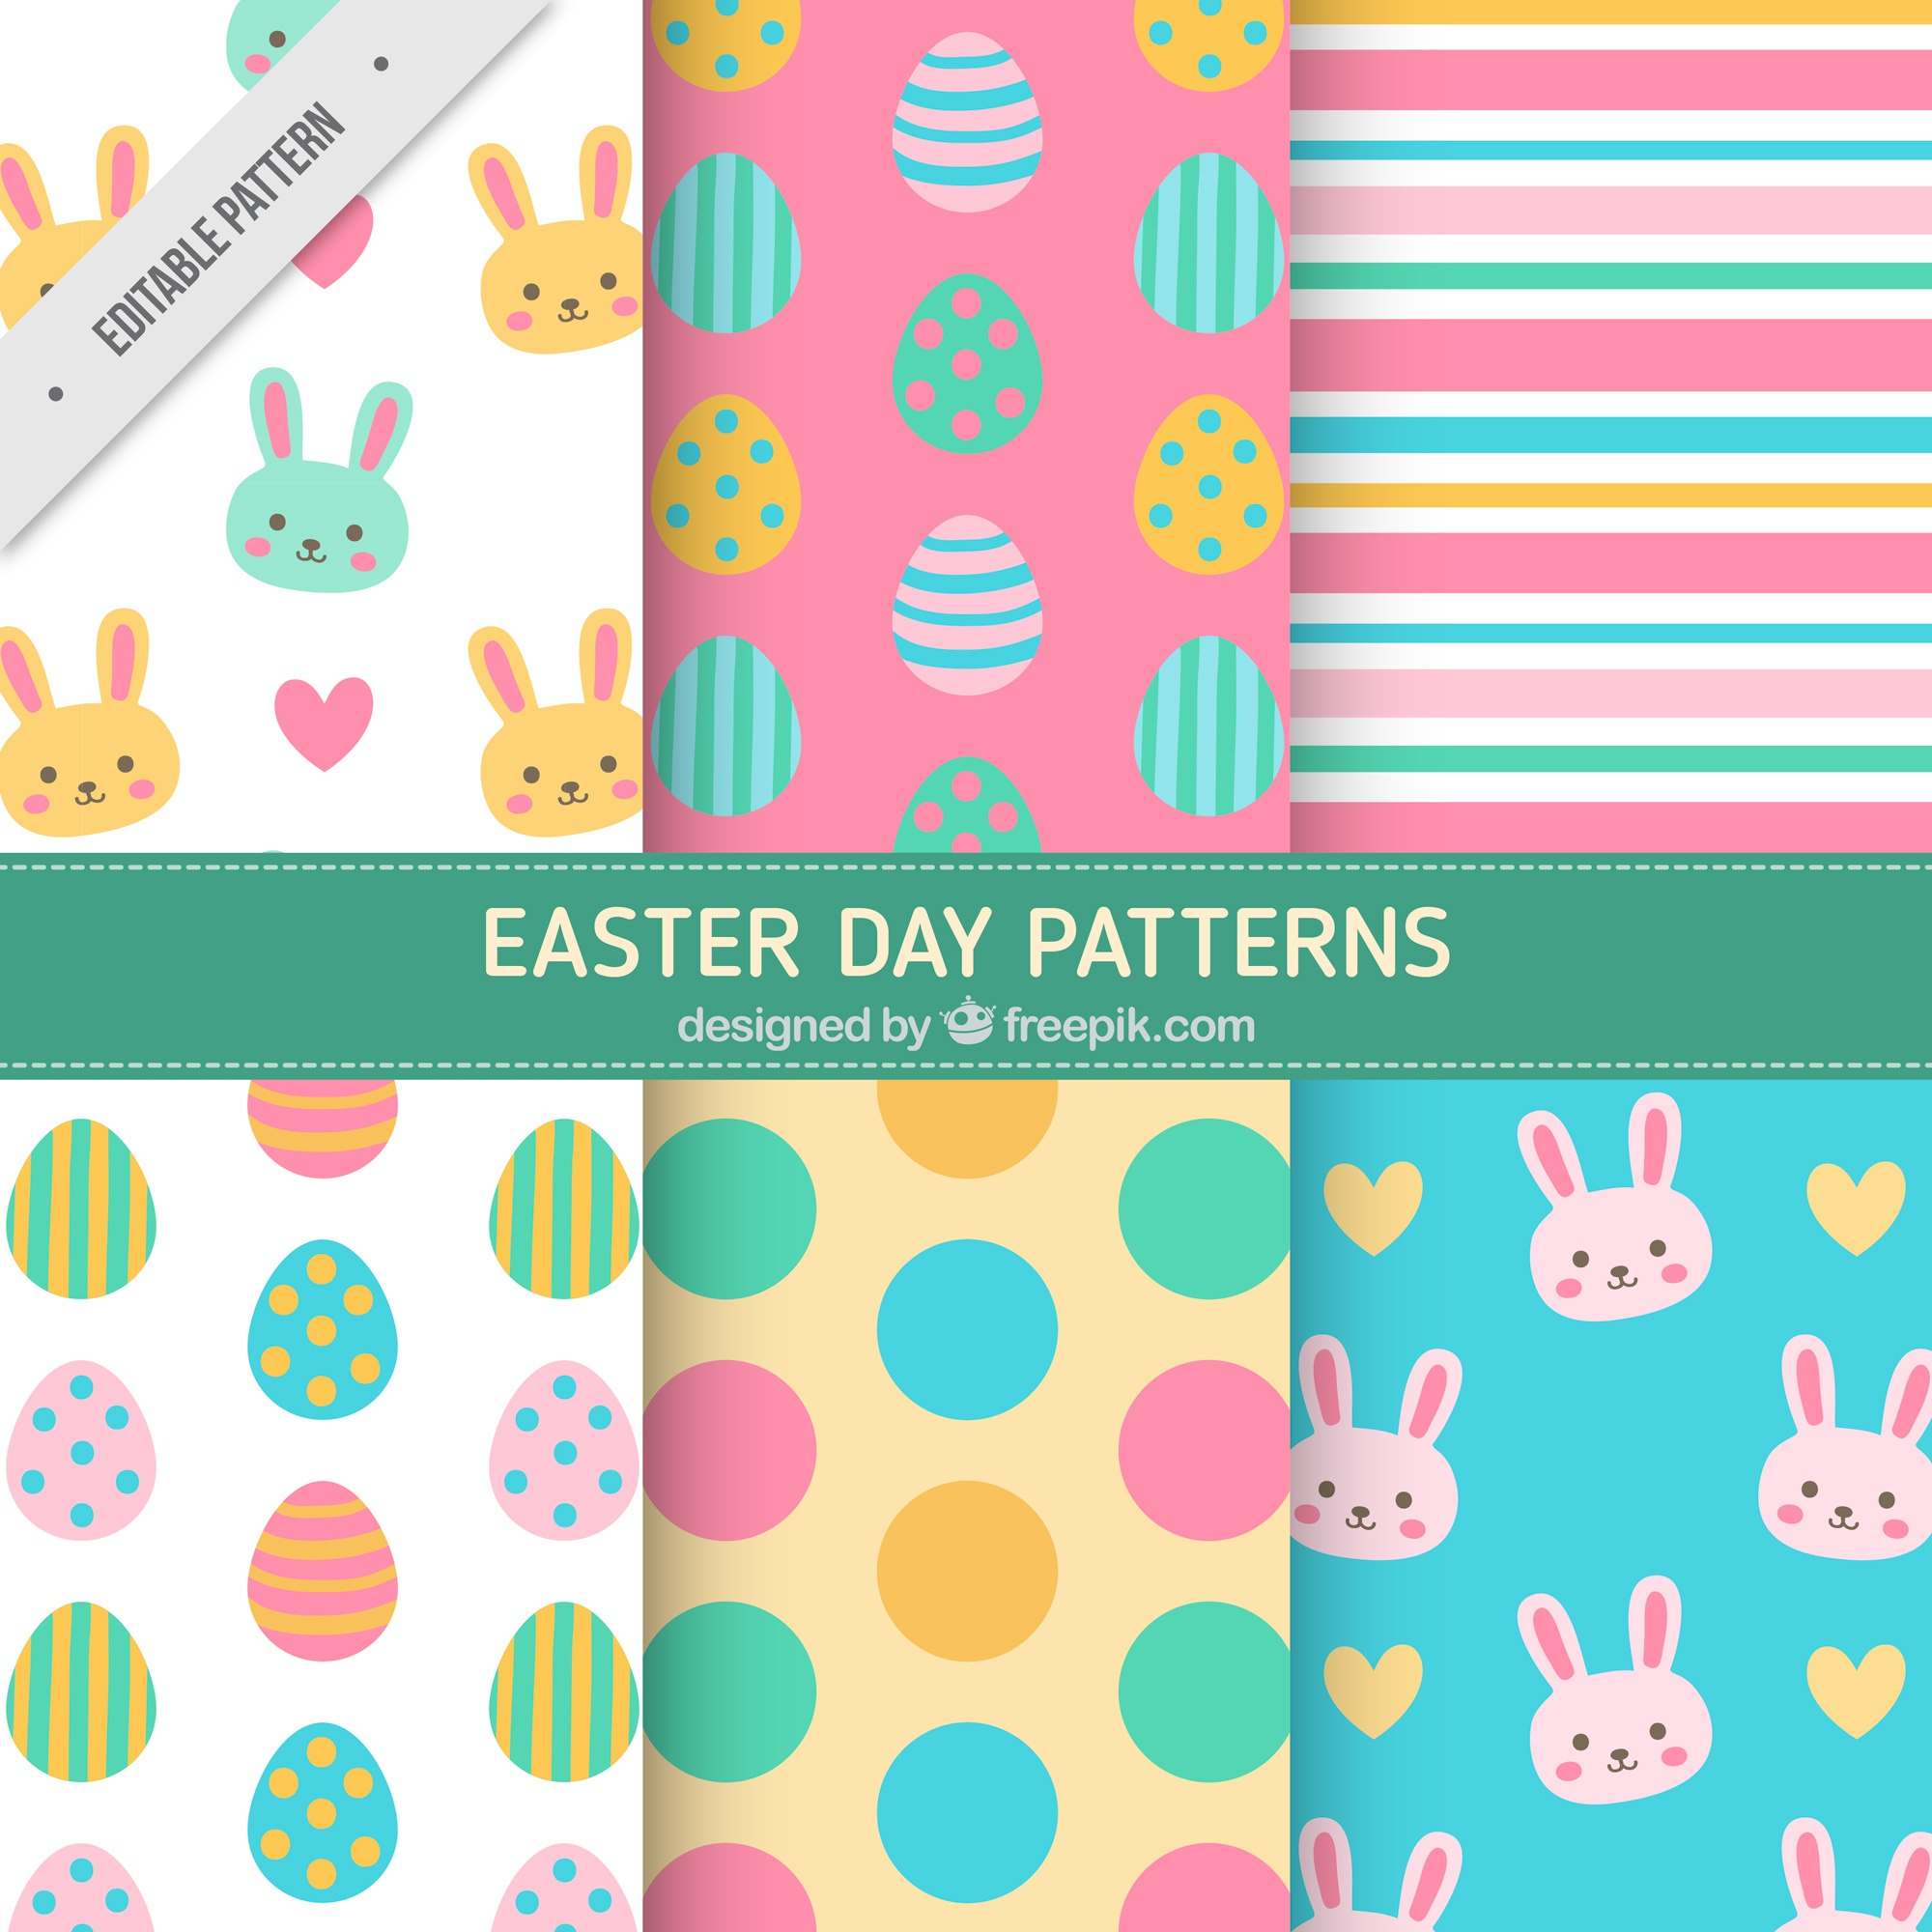 Colorful easter patterns in flat design